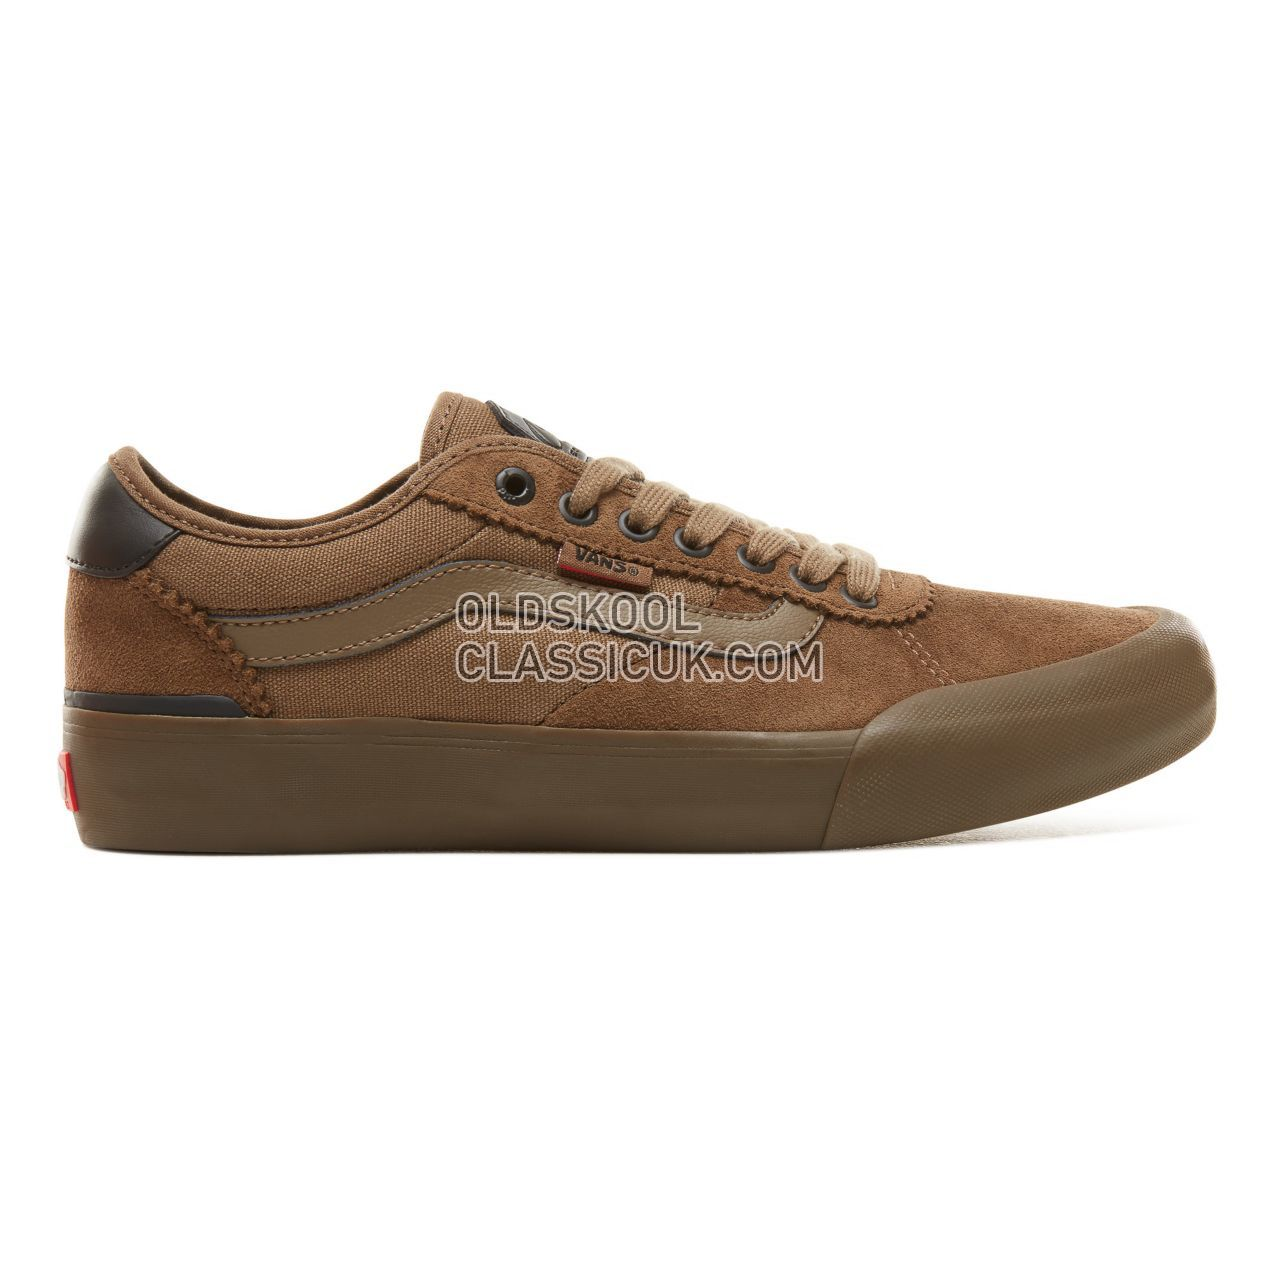 Vans Chima Pro 2 Sneakers Mens Cub/Dark Gum VA3MTIU1F Shoes